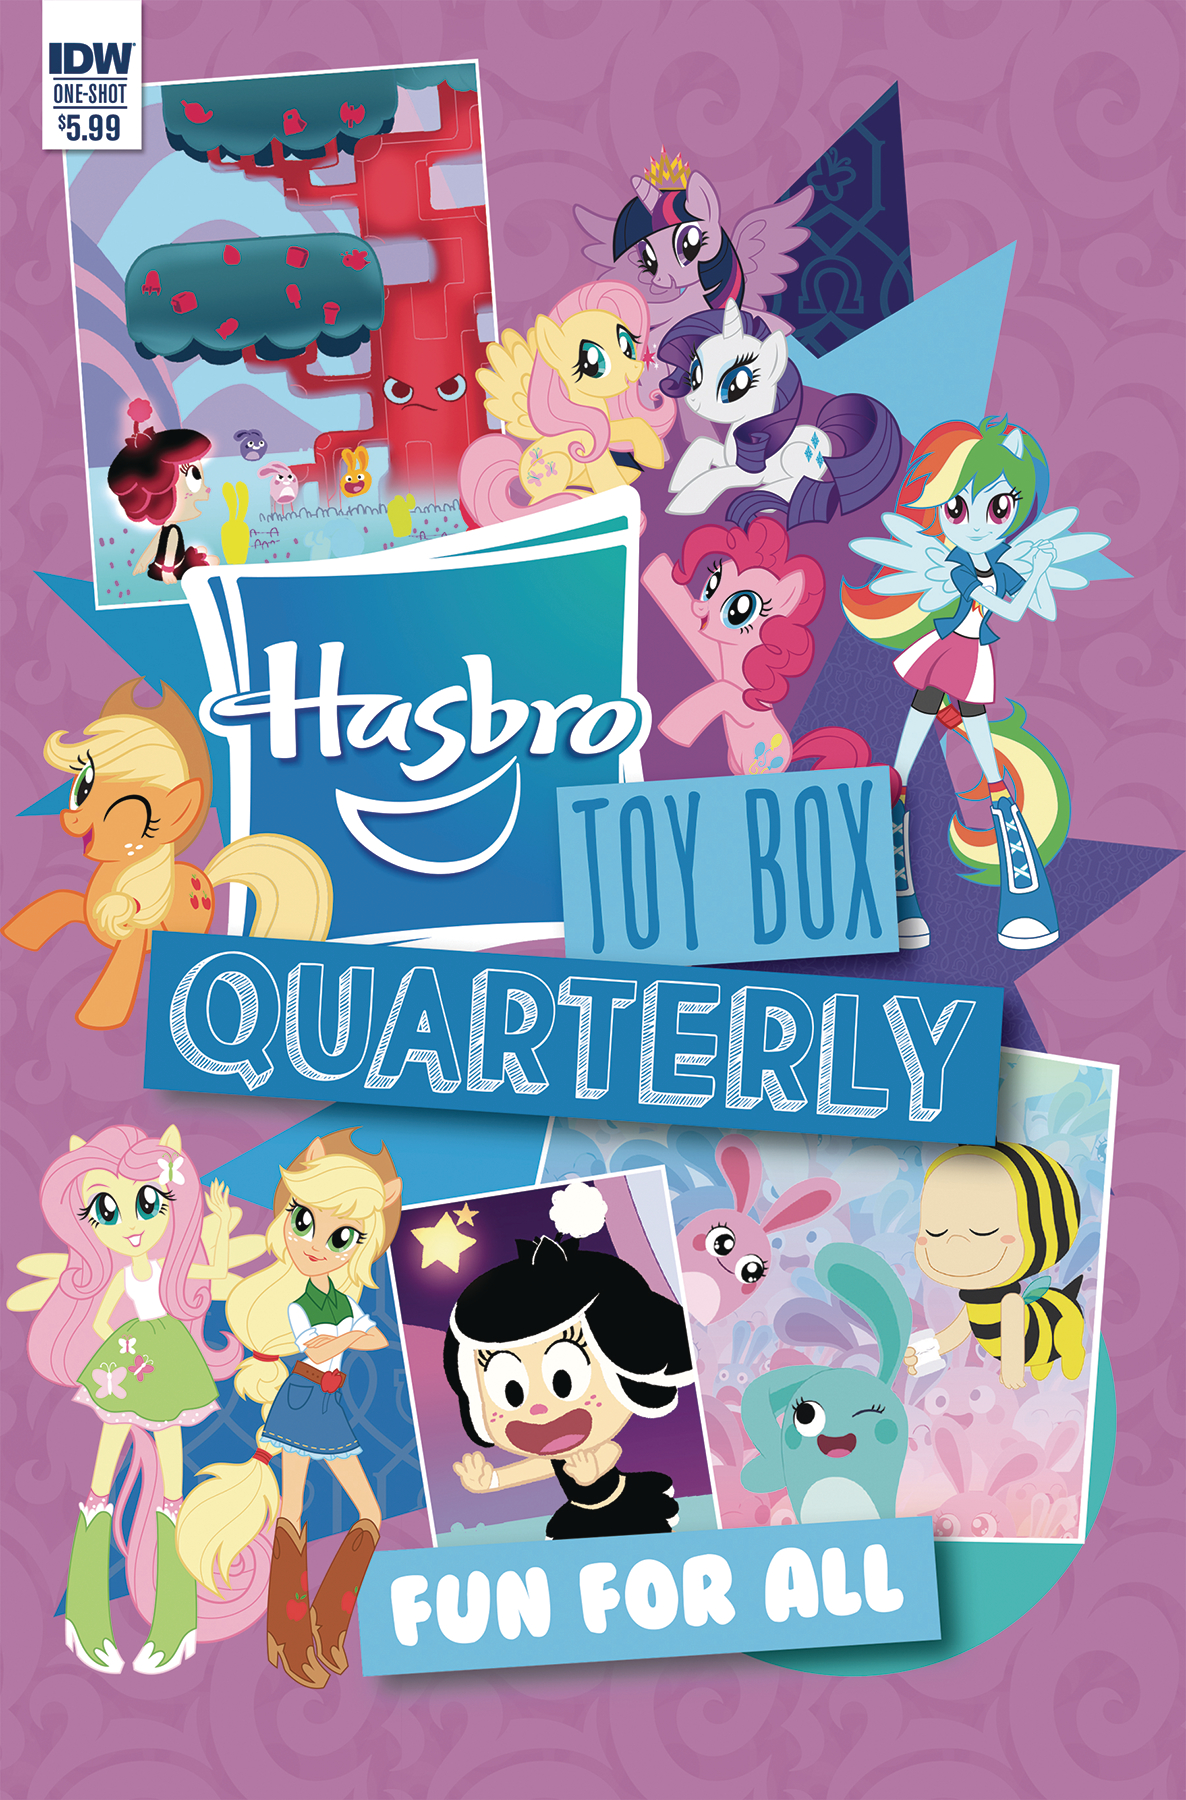 HASBRO TOYBOX QUARTERLY FUN FOR ALL